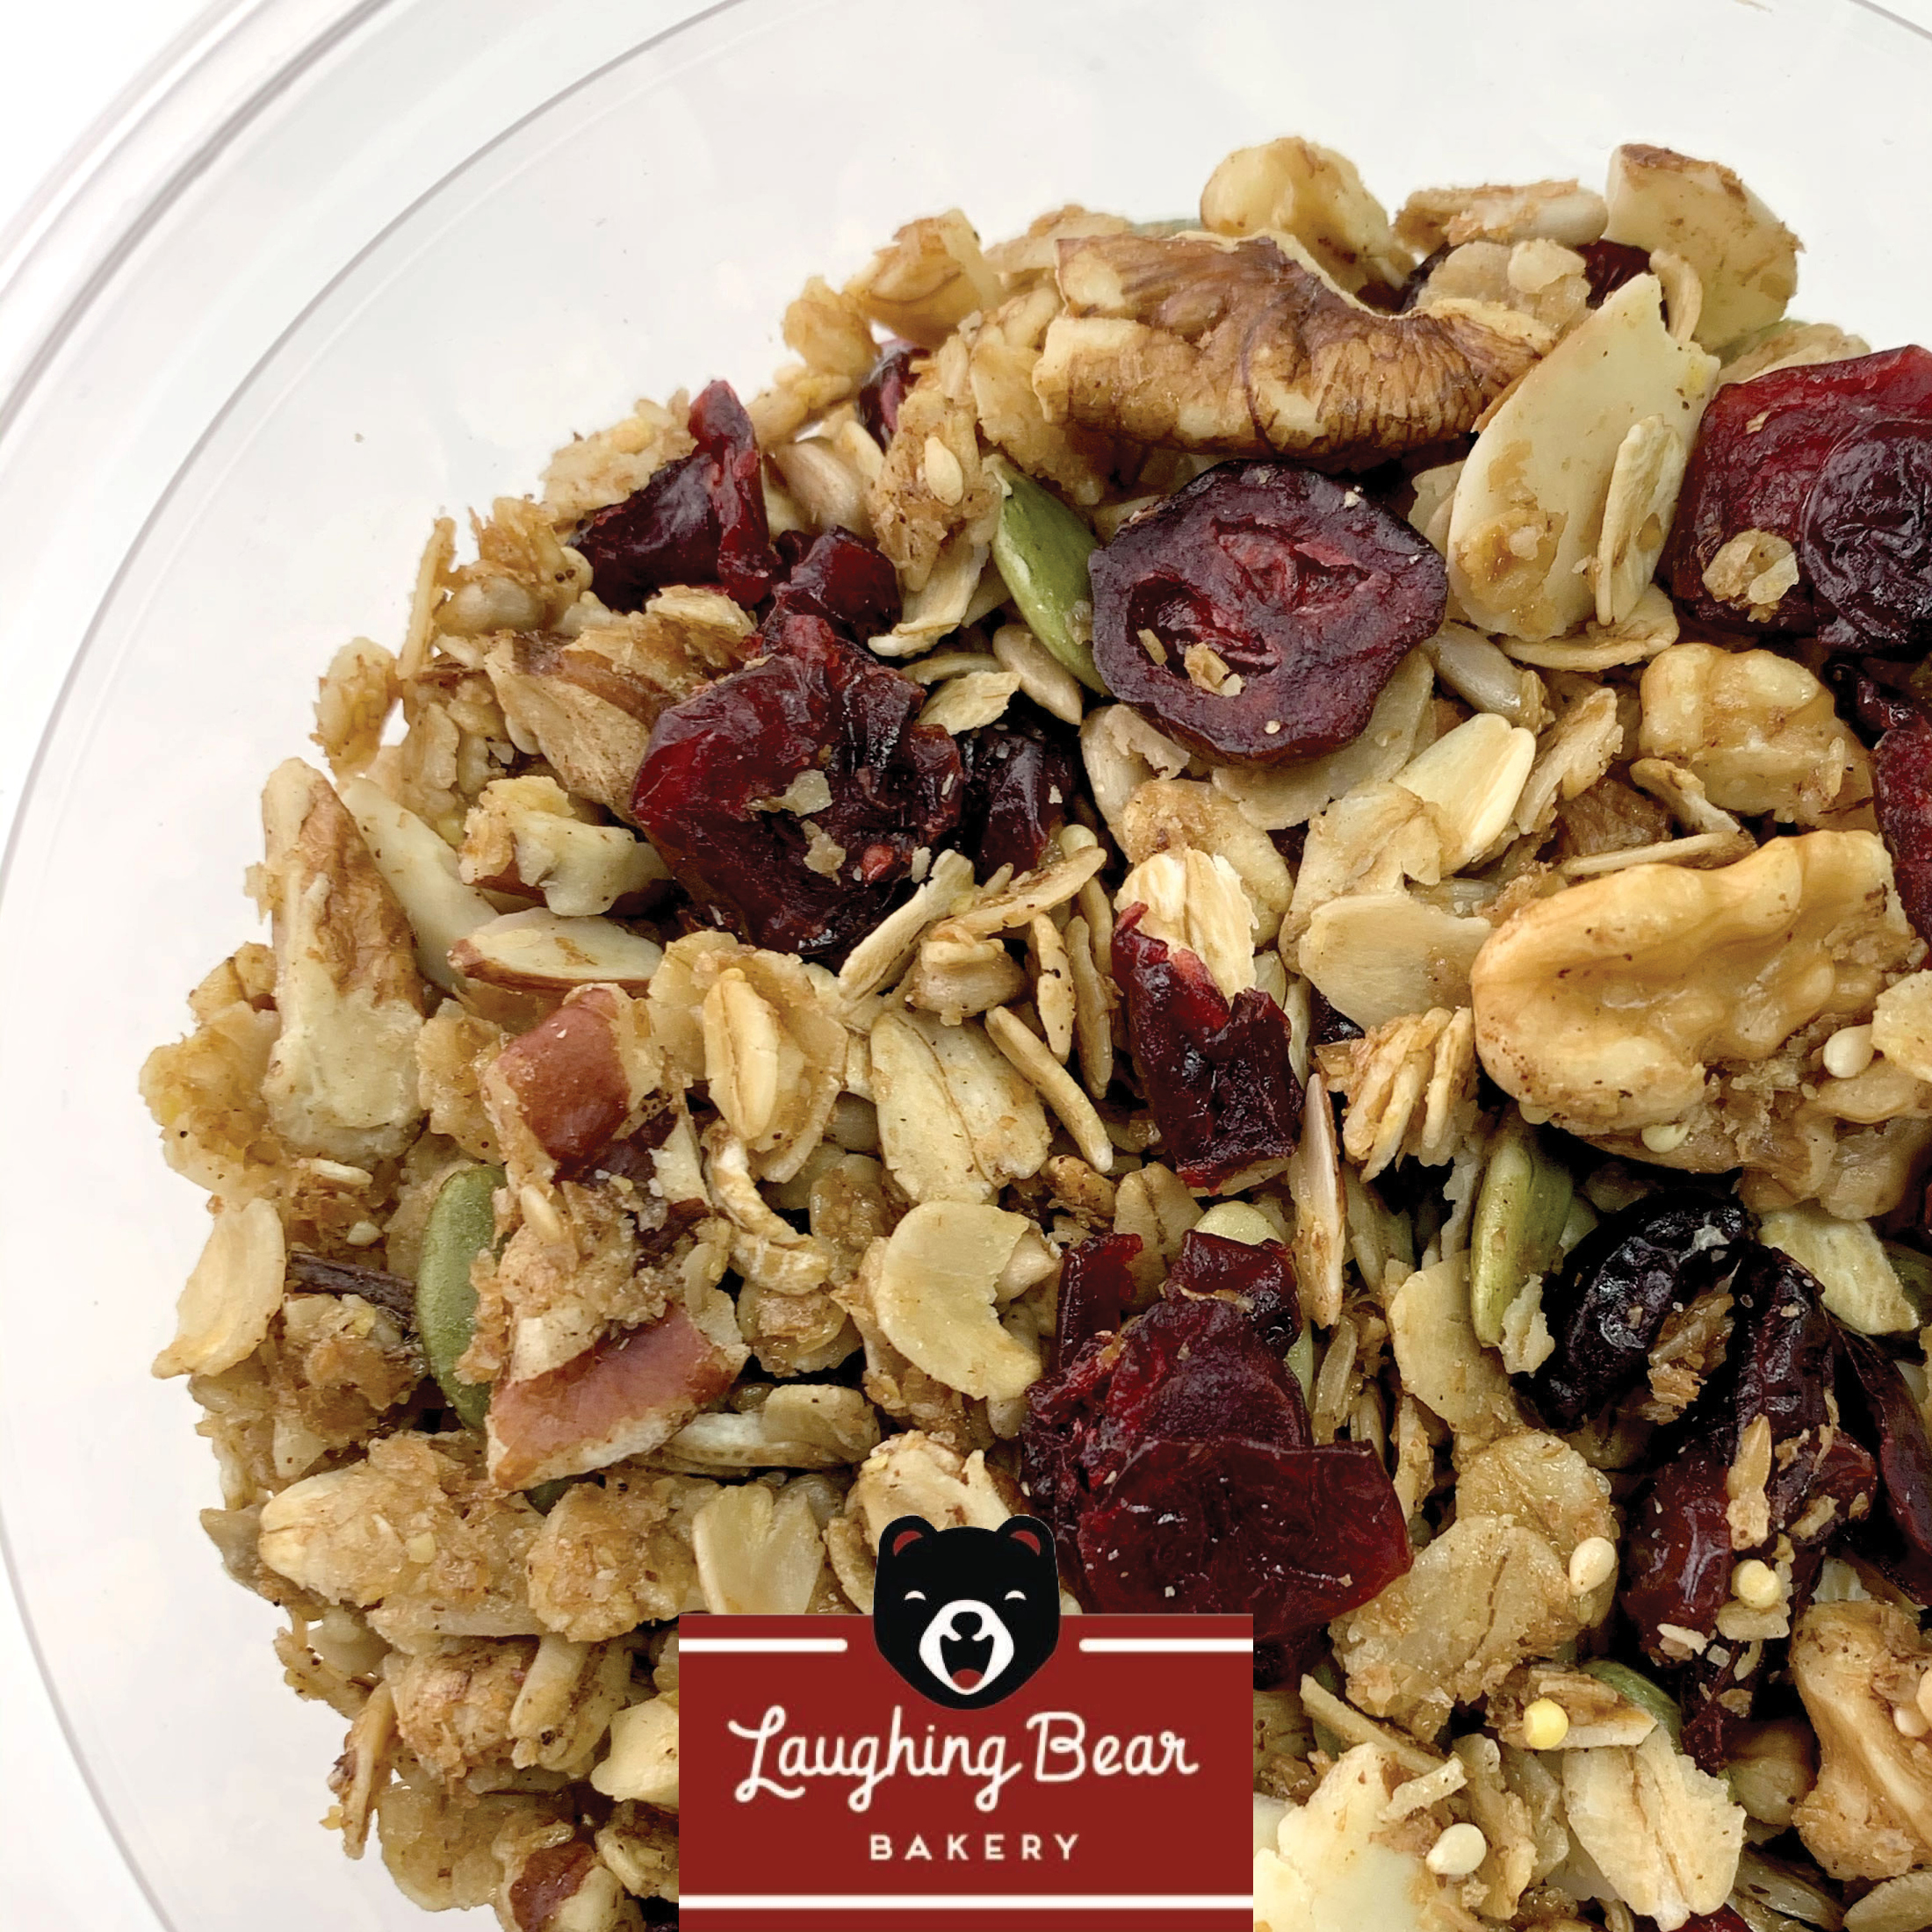 Granola From Laughing Bear Bakery